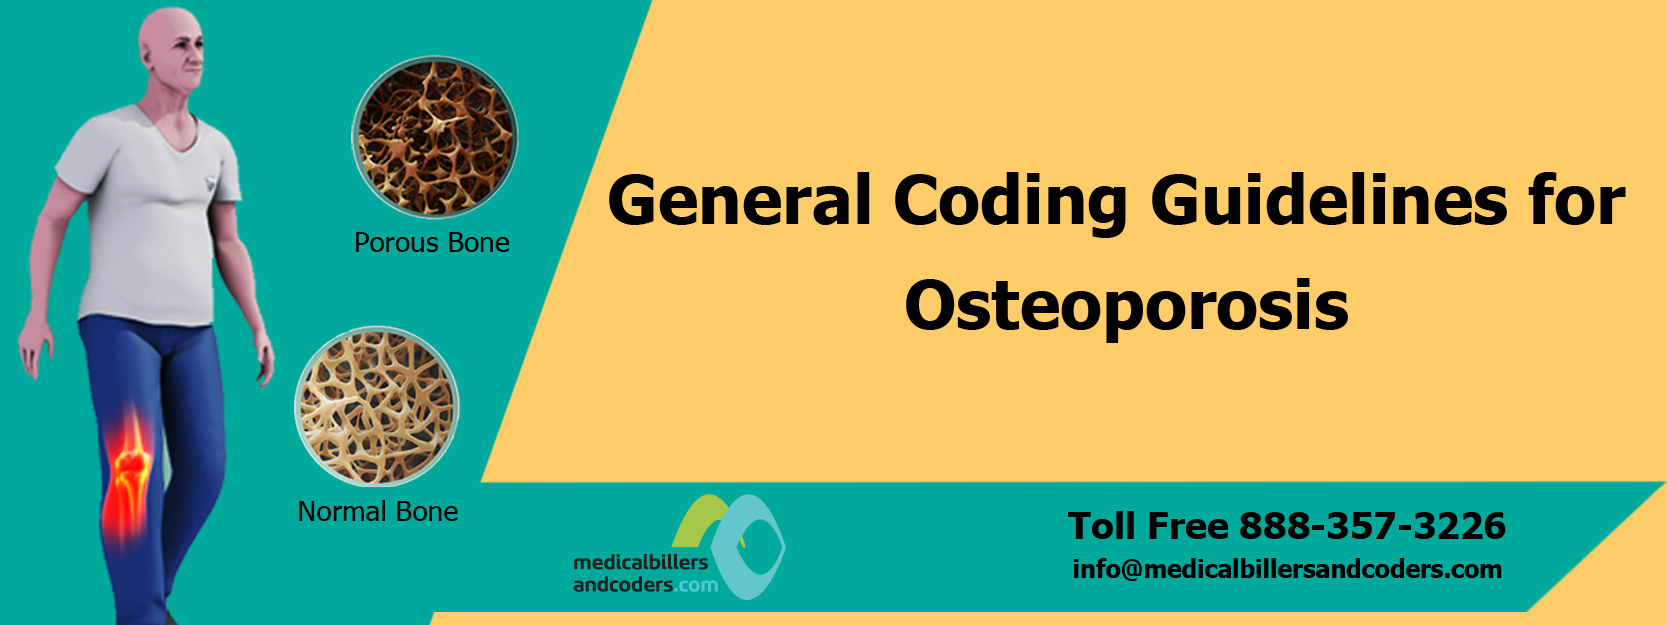 General Coding Guidelines for Osteoporosis